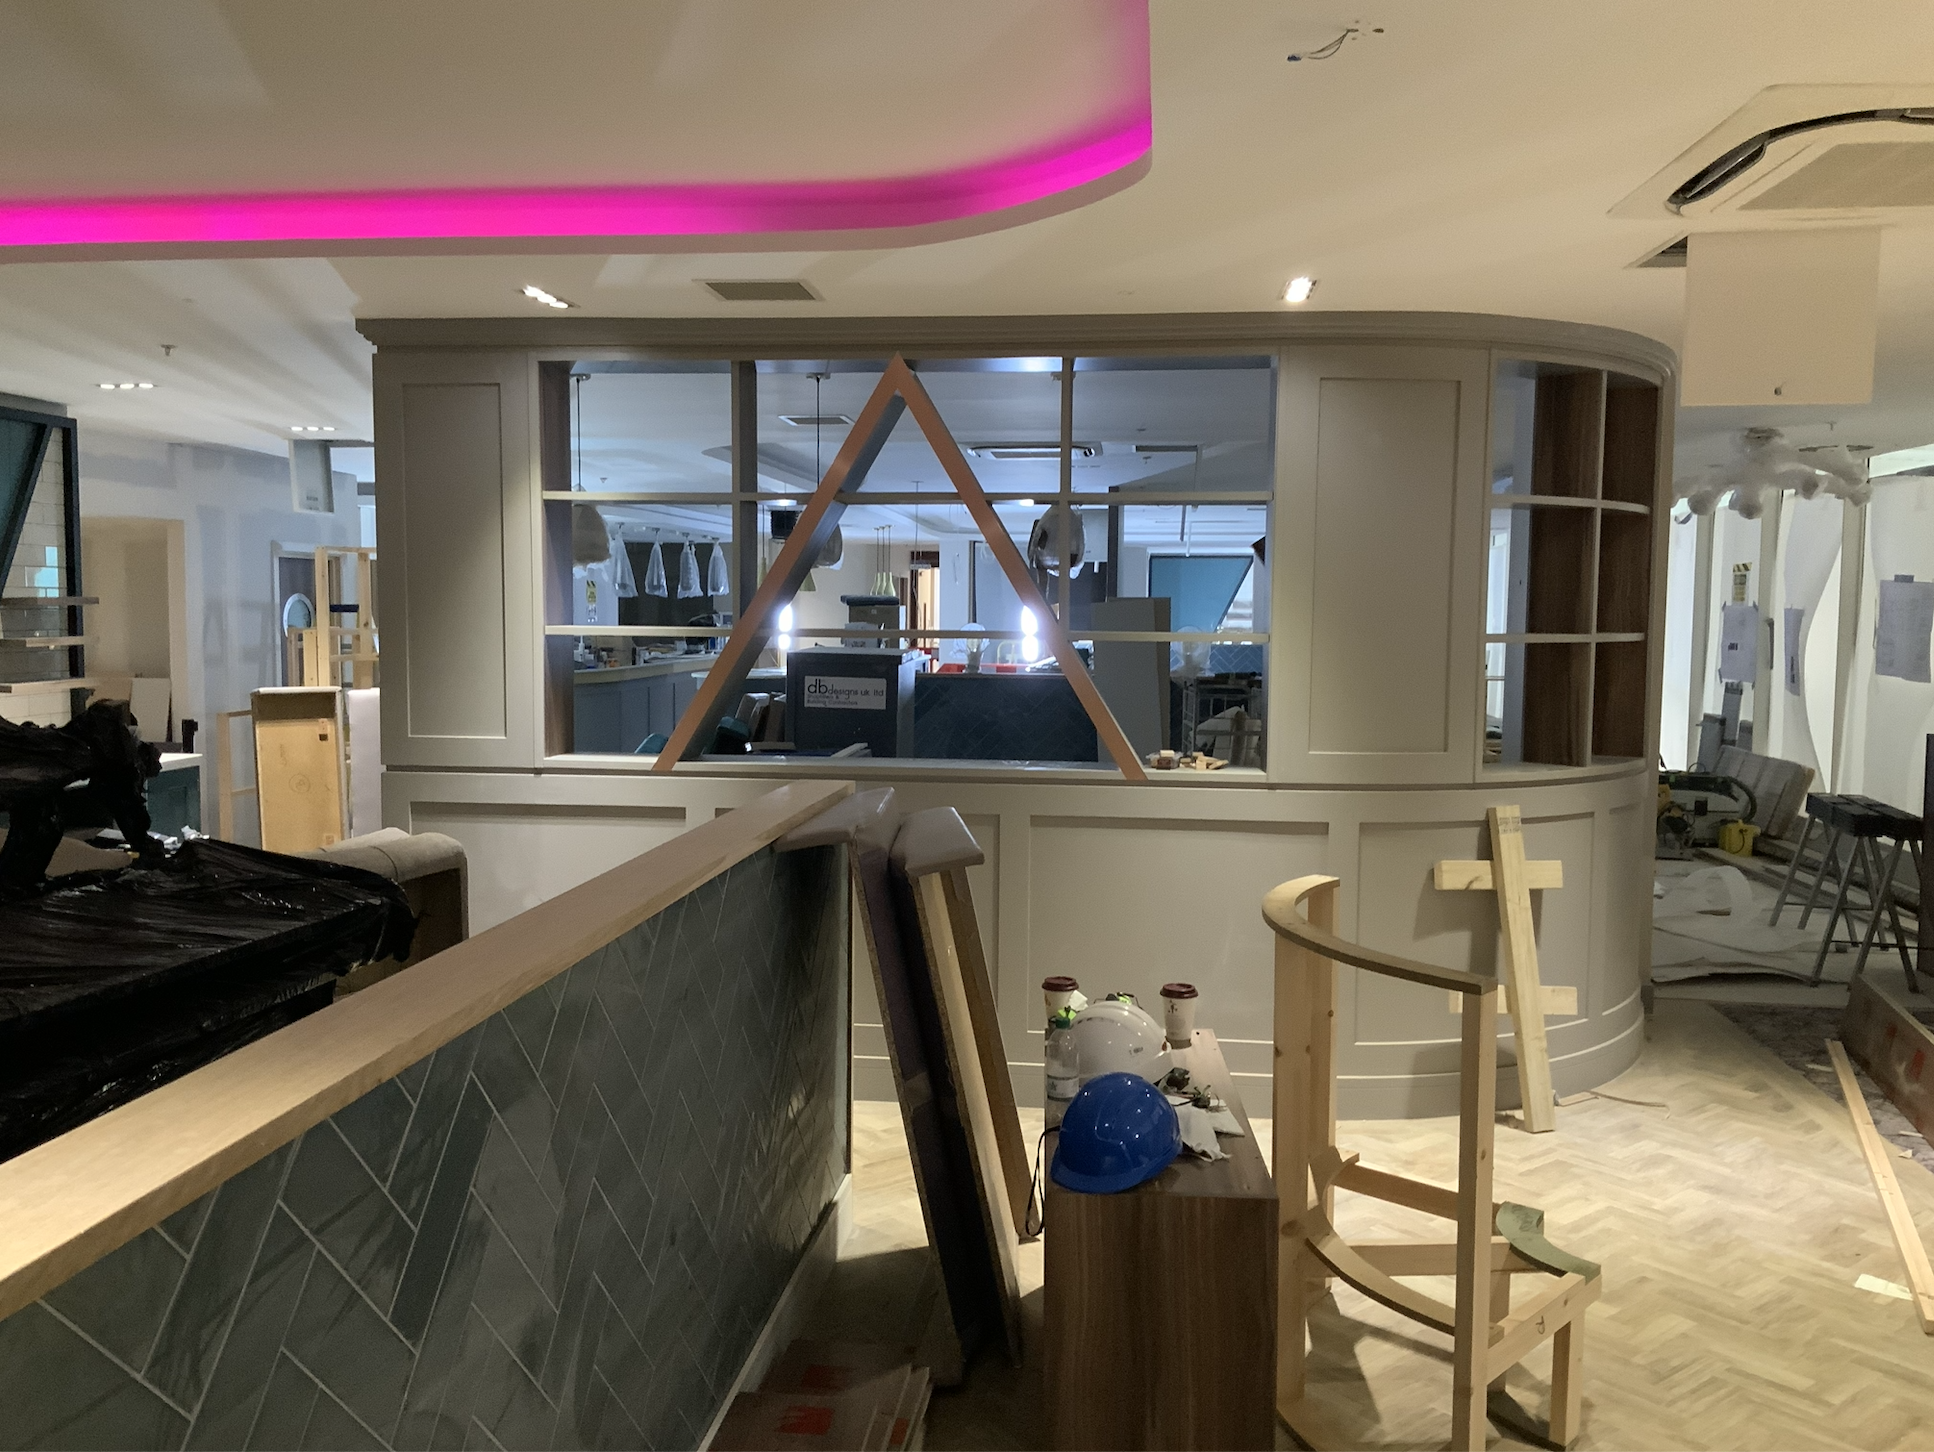 Building Progress at Aspire Lounge London Luton Airport